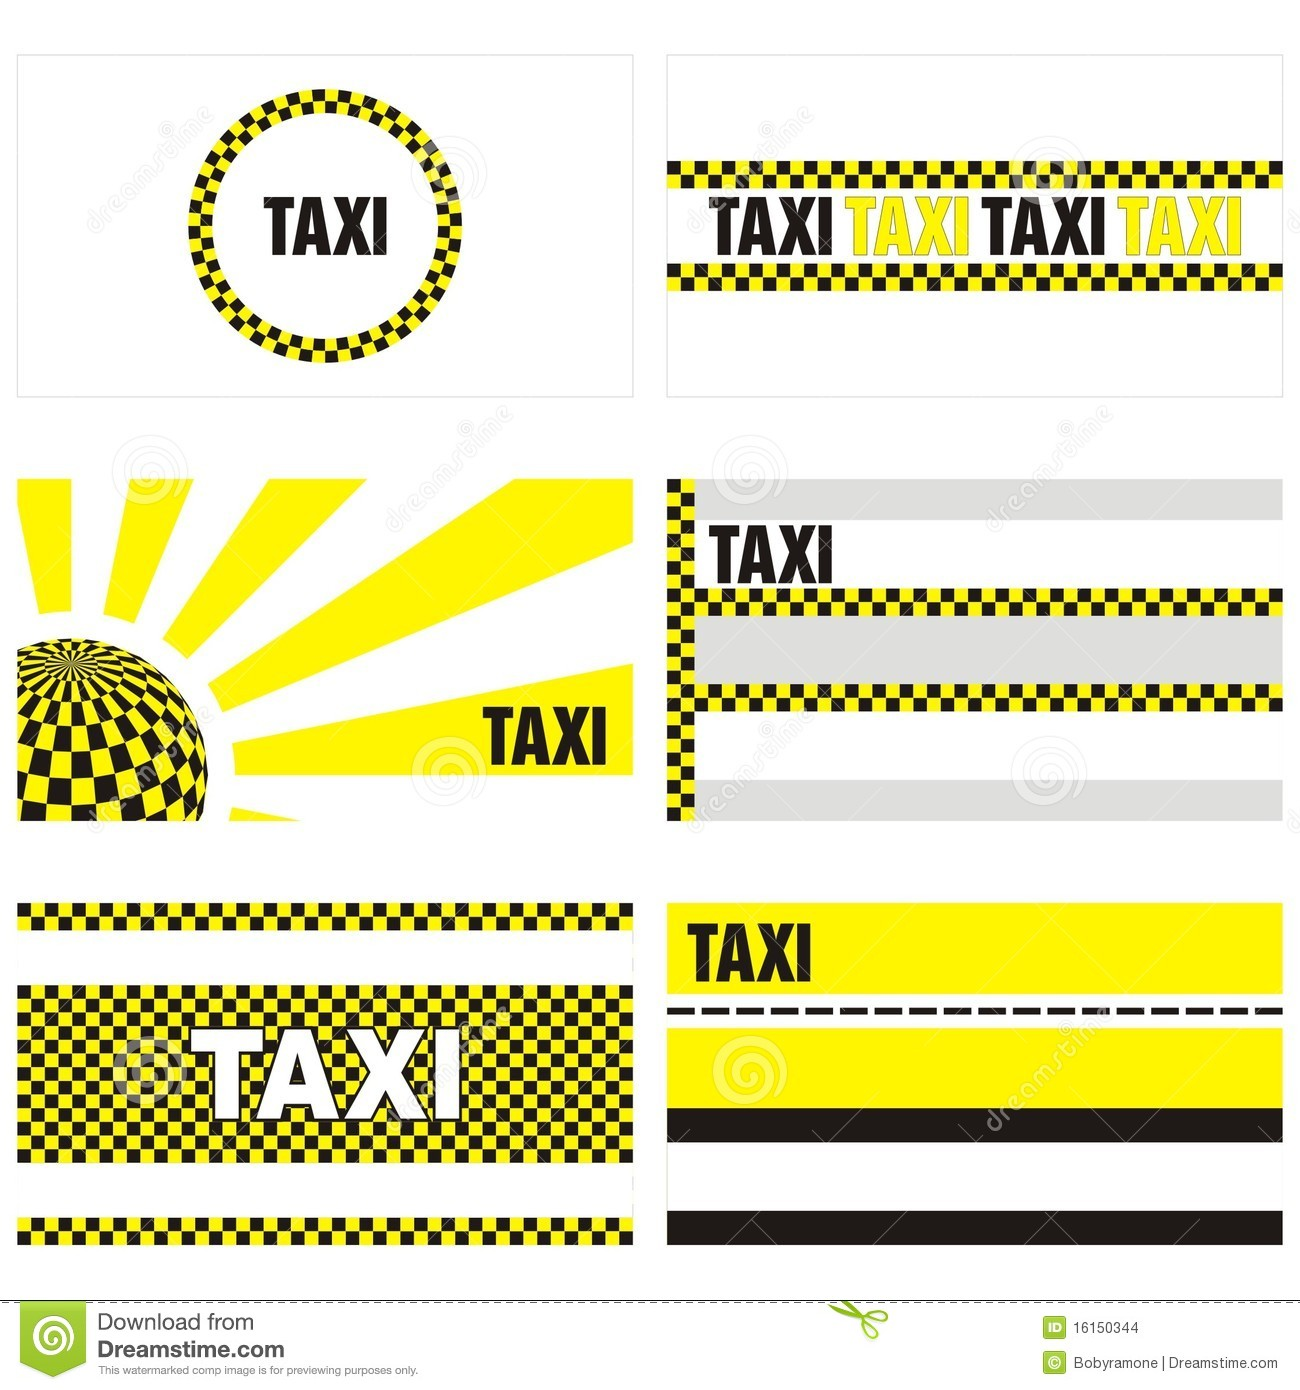 Taxi business cards 90 x 50 mm stock illustration illustration of taxi business cards 90 x 50 mm stock illustration illustration of city business 16150344 reheart Images